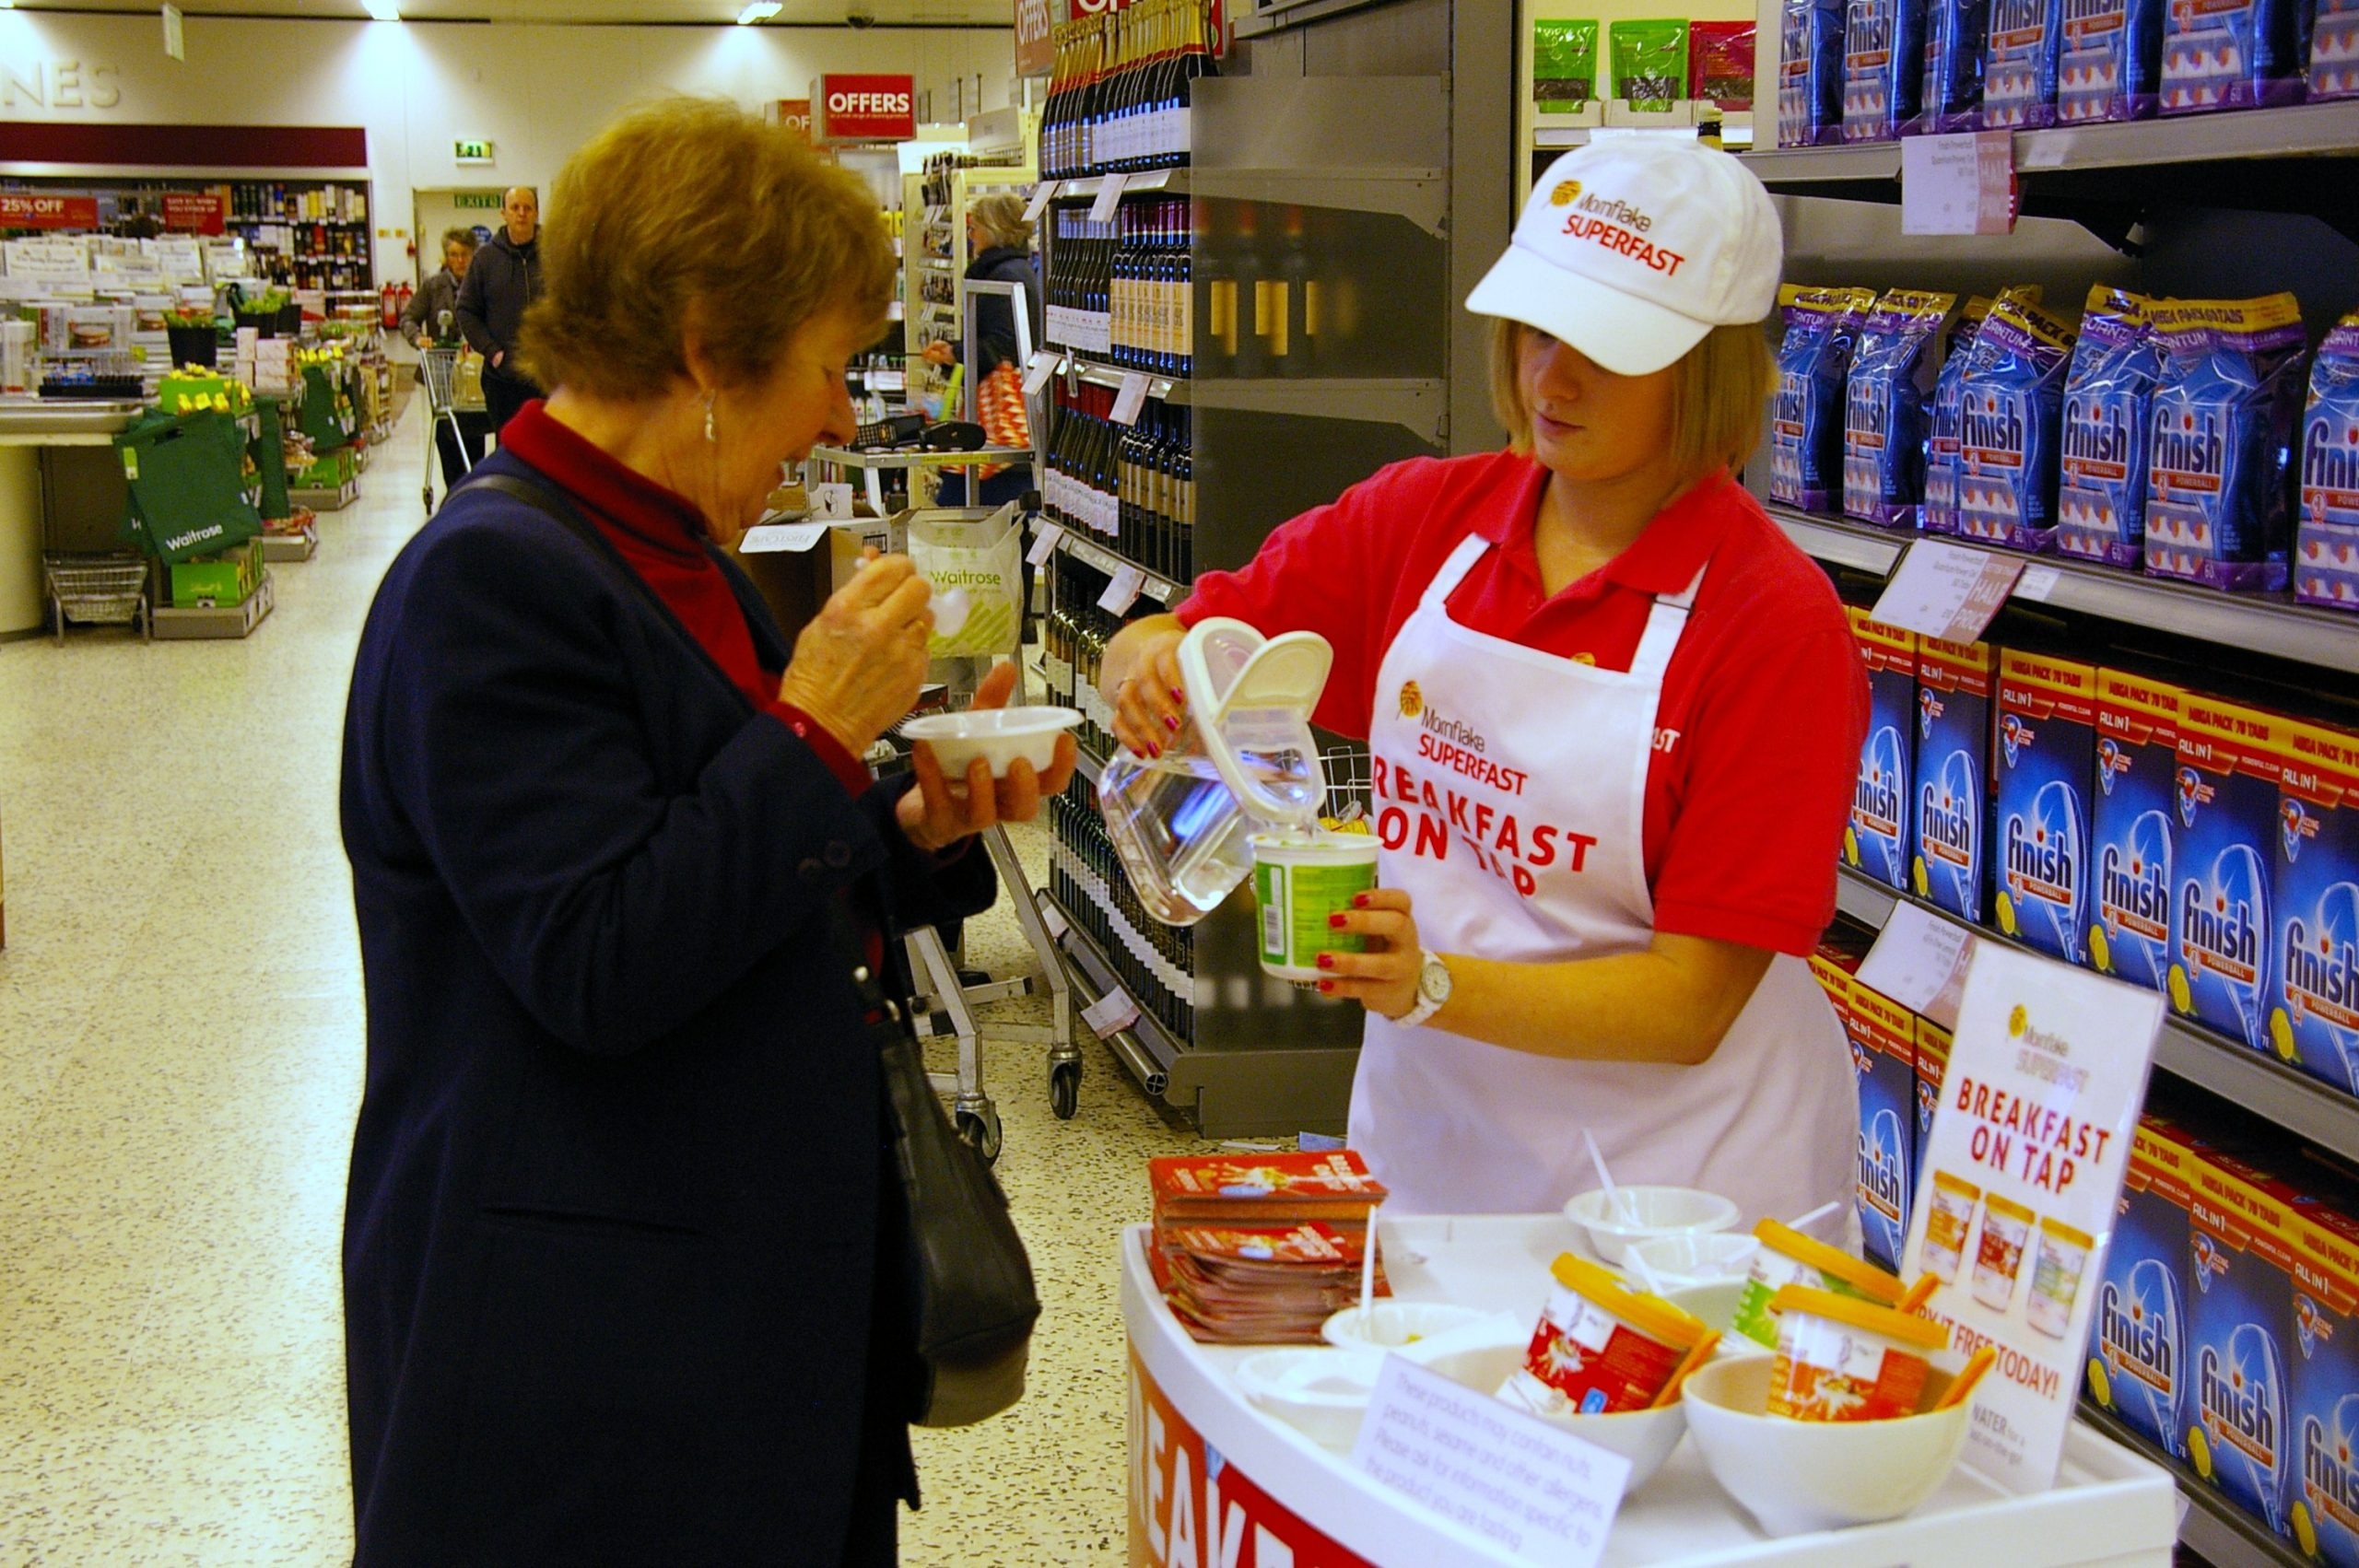 Experiential Marketing With Mornflake Superfast Cereal in Waitrose Supermarkets, shopper marketing, Waitrose shopper agency, retail marketing agency, examples